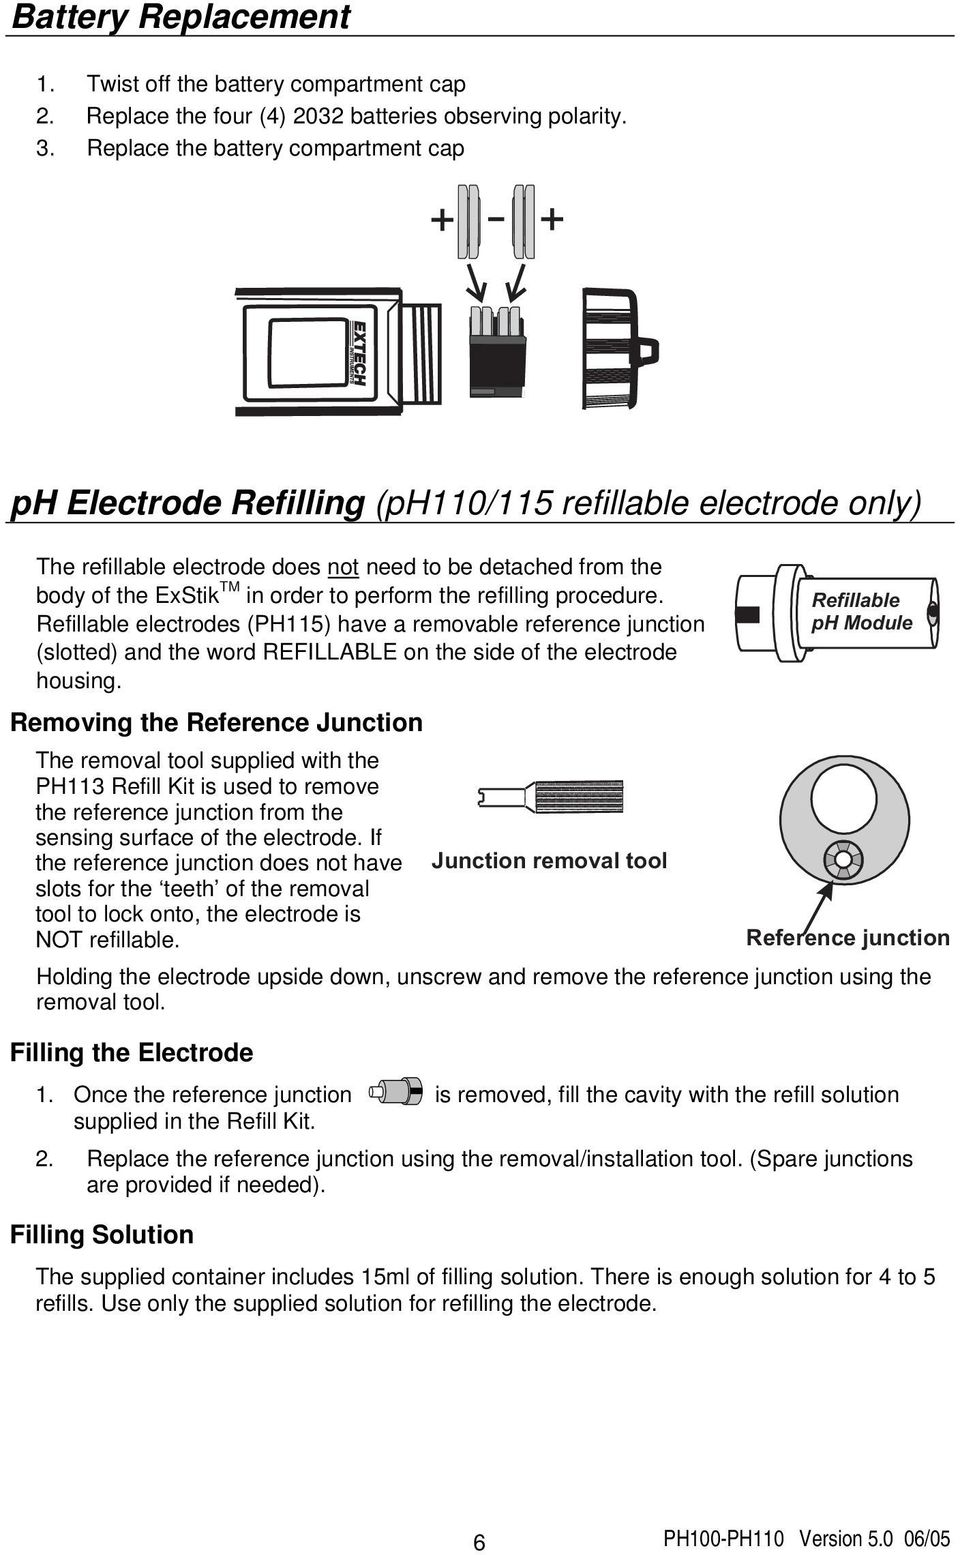 perform the refilling procedure. Refillable electrodes (PH115) have a removable reference junction (slotted) and the word REFILLABLE on the side of the electrode housing.